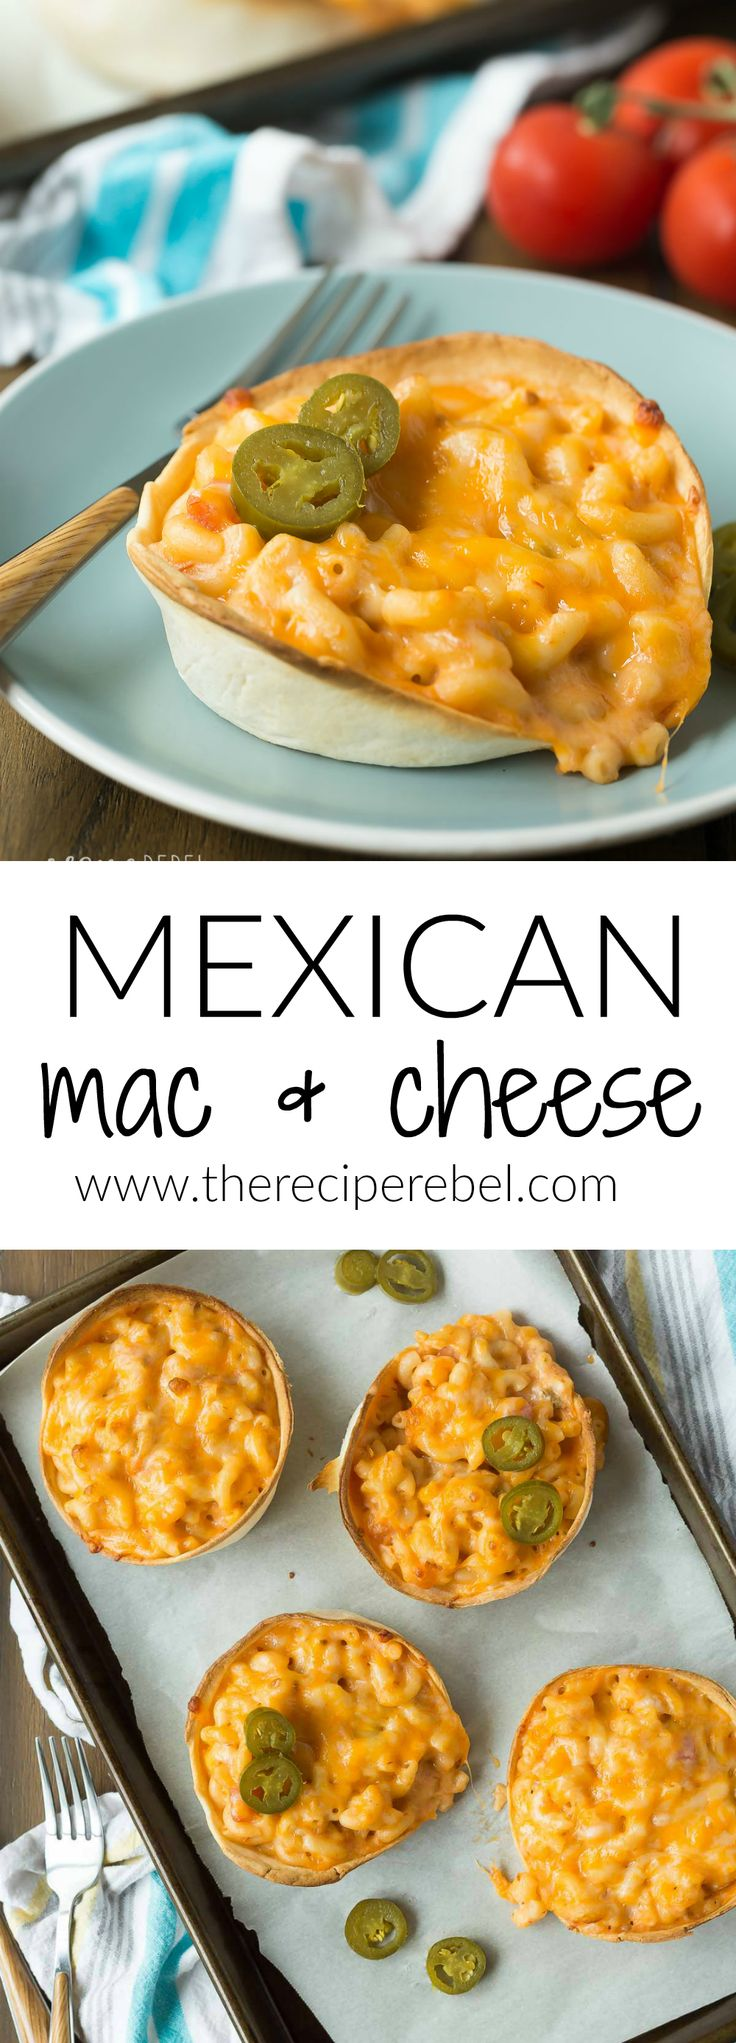 This Mexican Baked Mac and Cheese is packed with flavor from taco seasoning, salsa and baked in a tortilla bowl for a fun twist on taco night! The kids LOVE it!